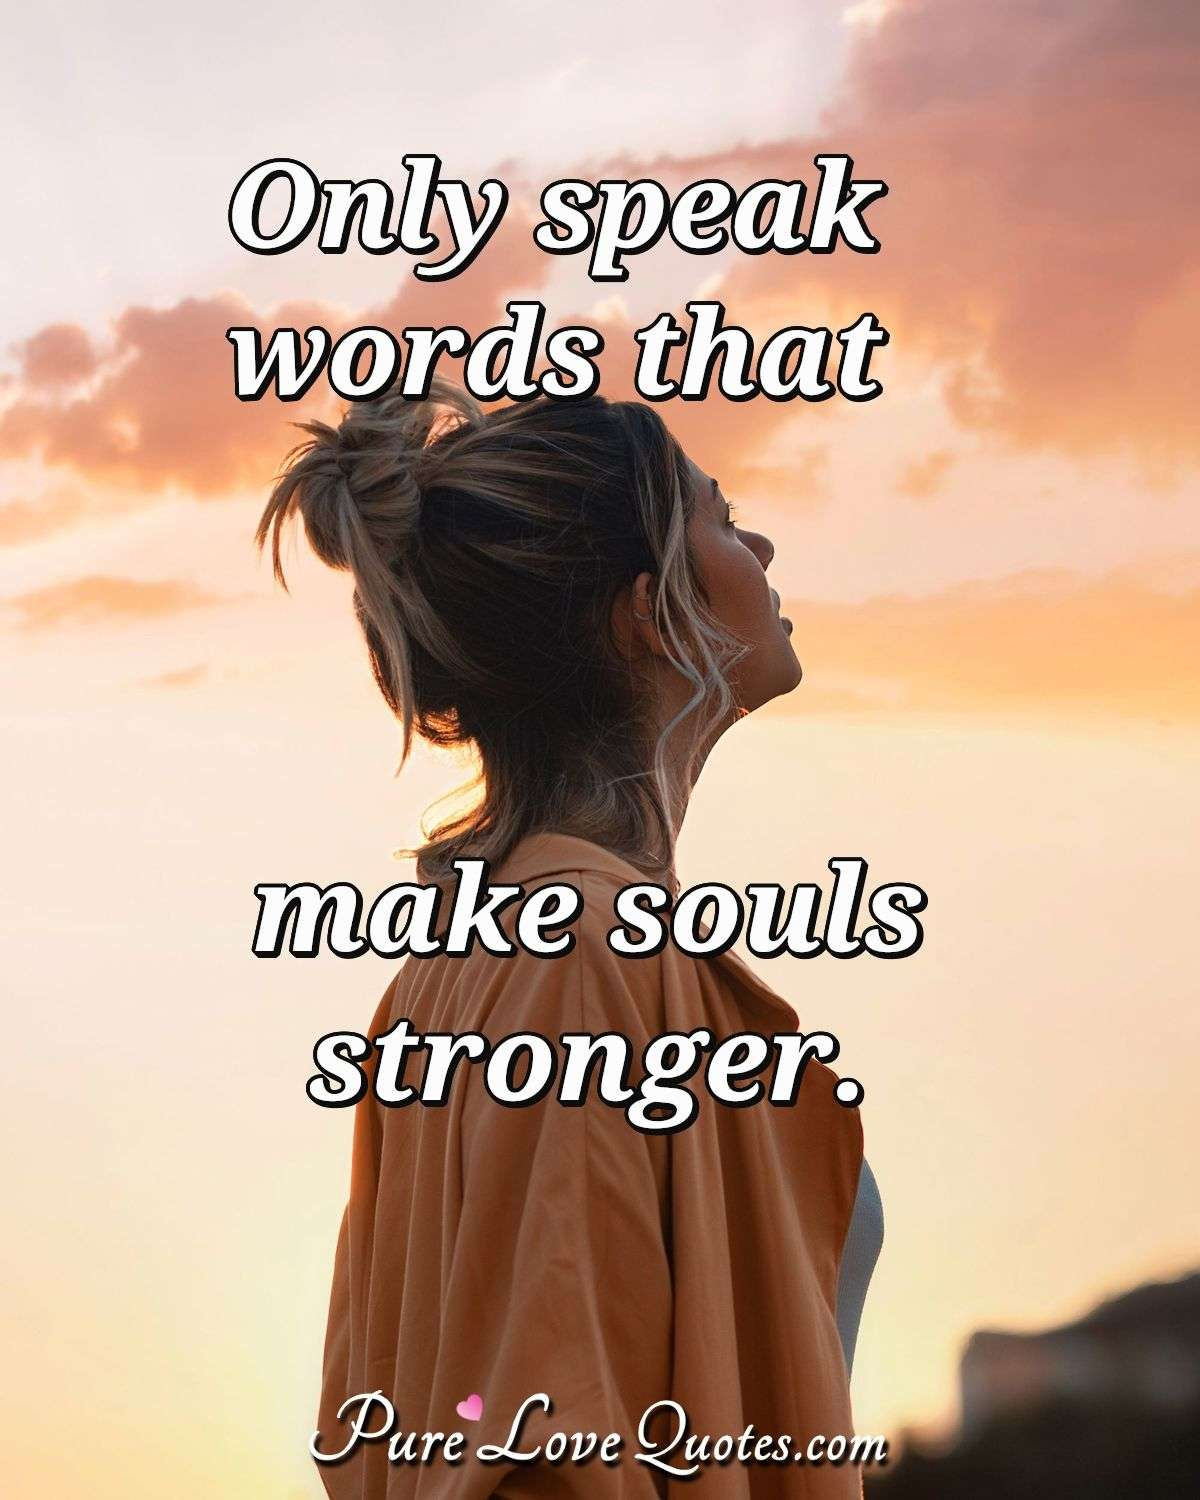 Only speak words that make souls stronger. - Anonymous